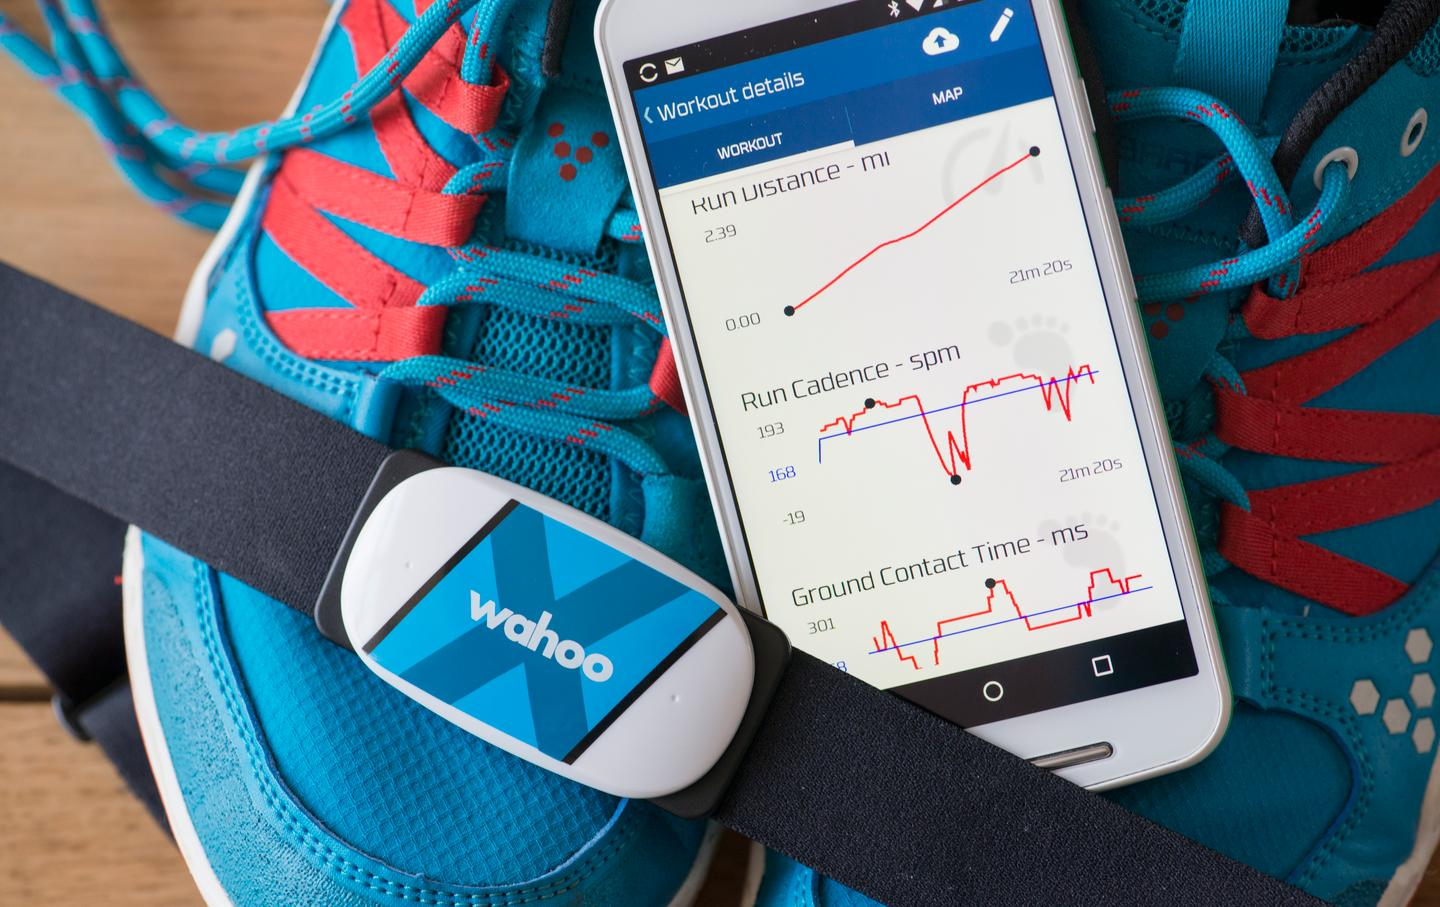 The Wahoo Fitness Tickr X is a chest-worn heart rate monitor and fitness tracker (Photo: Simon Crisp/Gizmag.com)